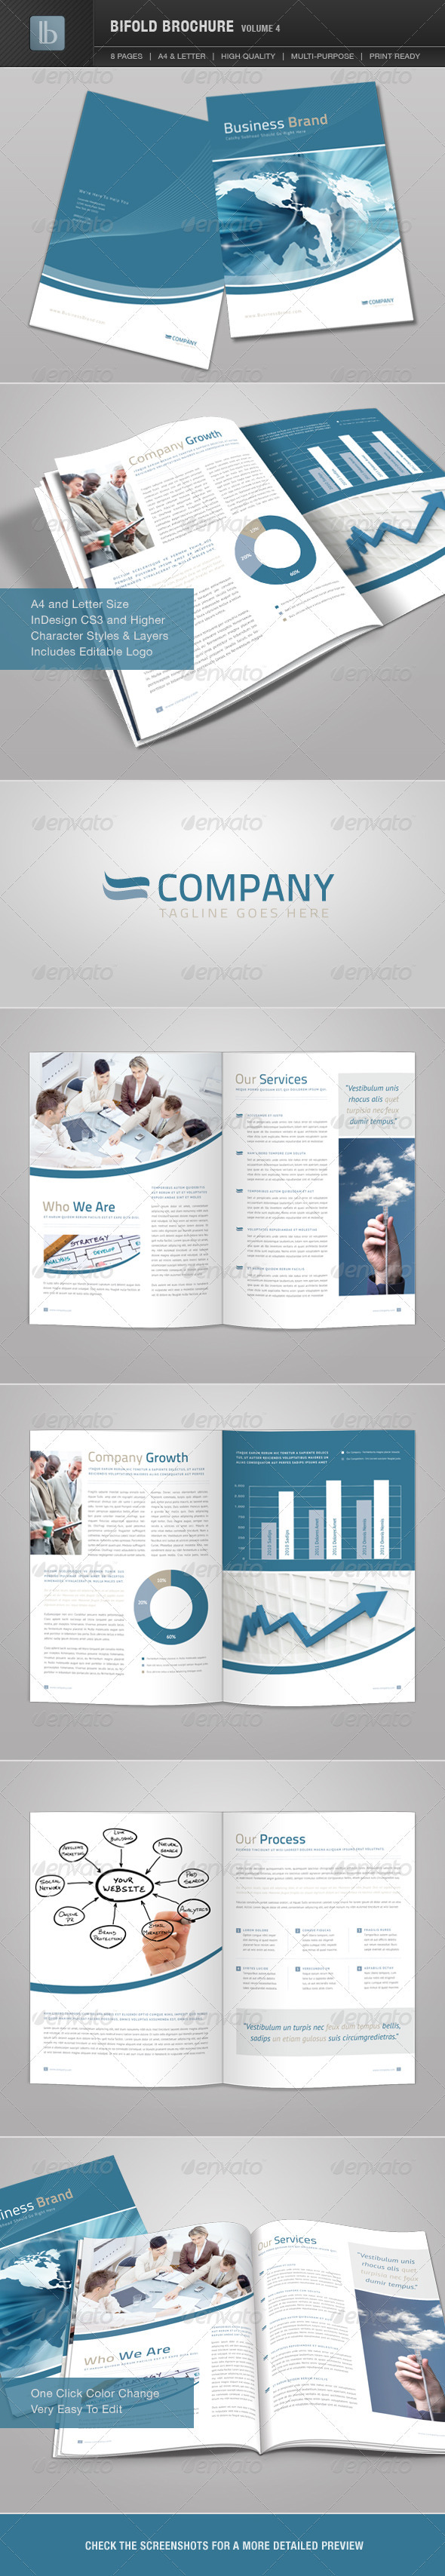 Bifold Brochure | Volume 4 - Corporate Brochures